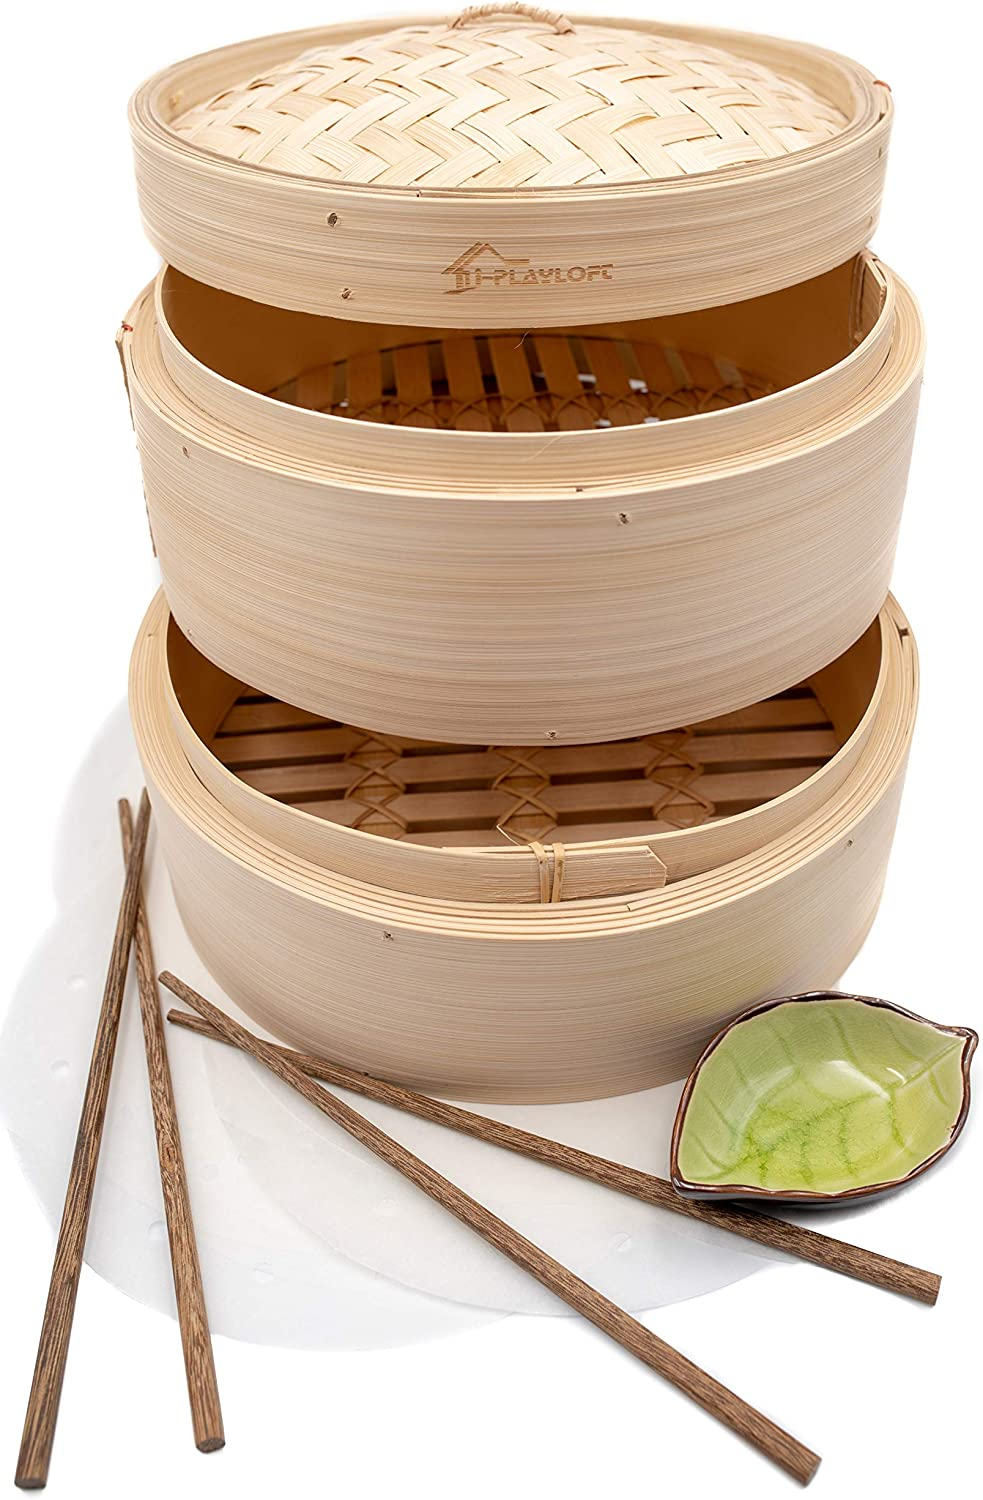 Best Bamboo Basket For Steaming 2020: (Top 10) Reviewed 9